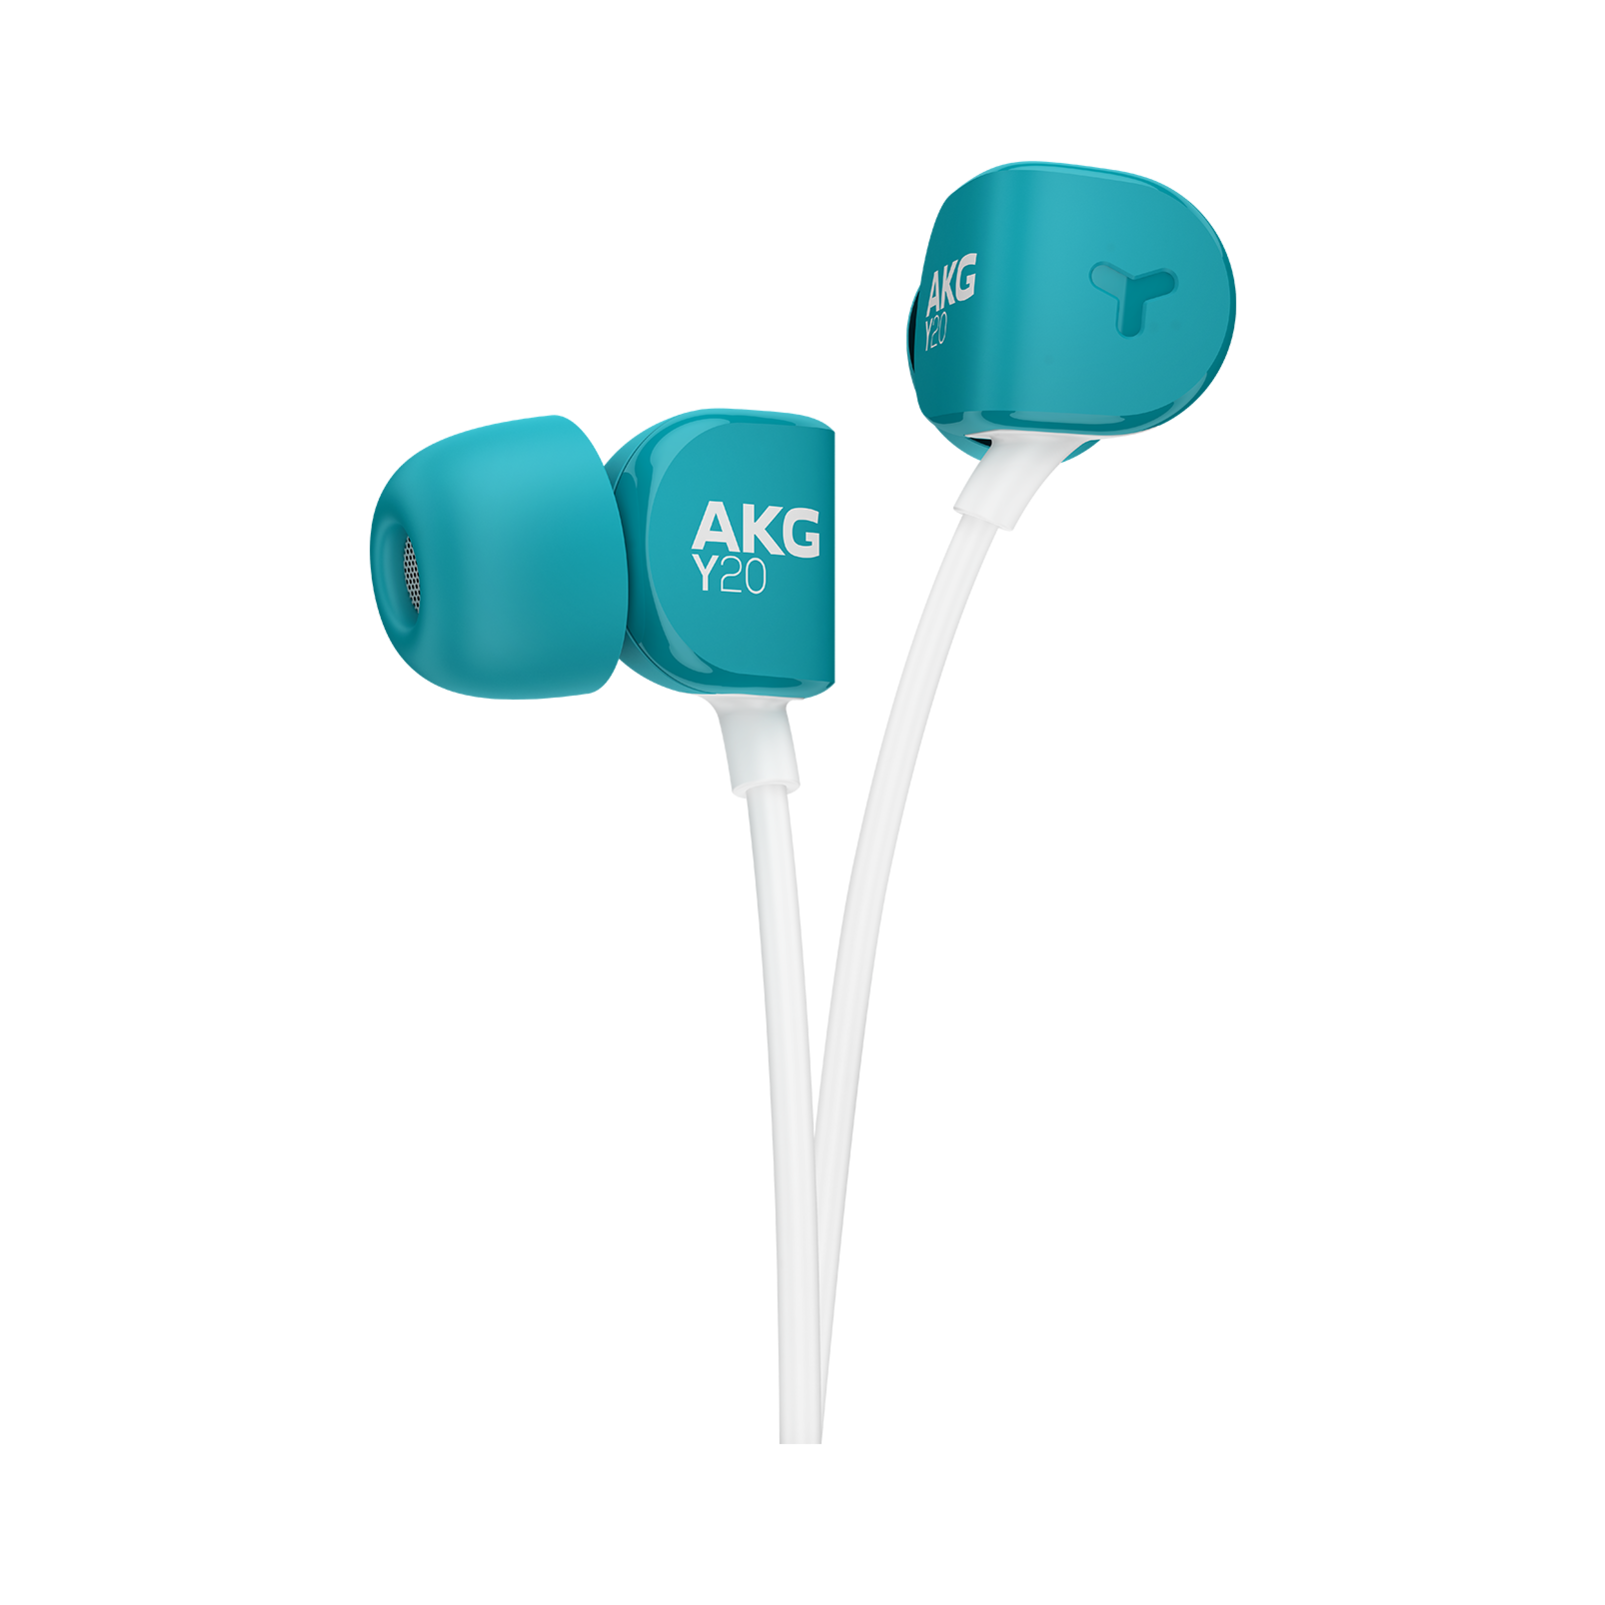 Y20U - Teal - Signature AKG in-ear stereo headphone that takes your calls - Detailshot 1